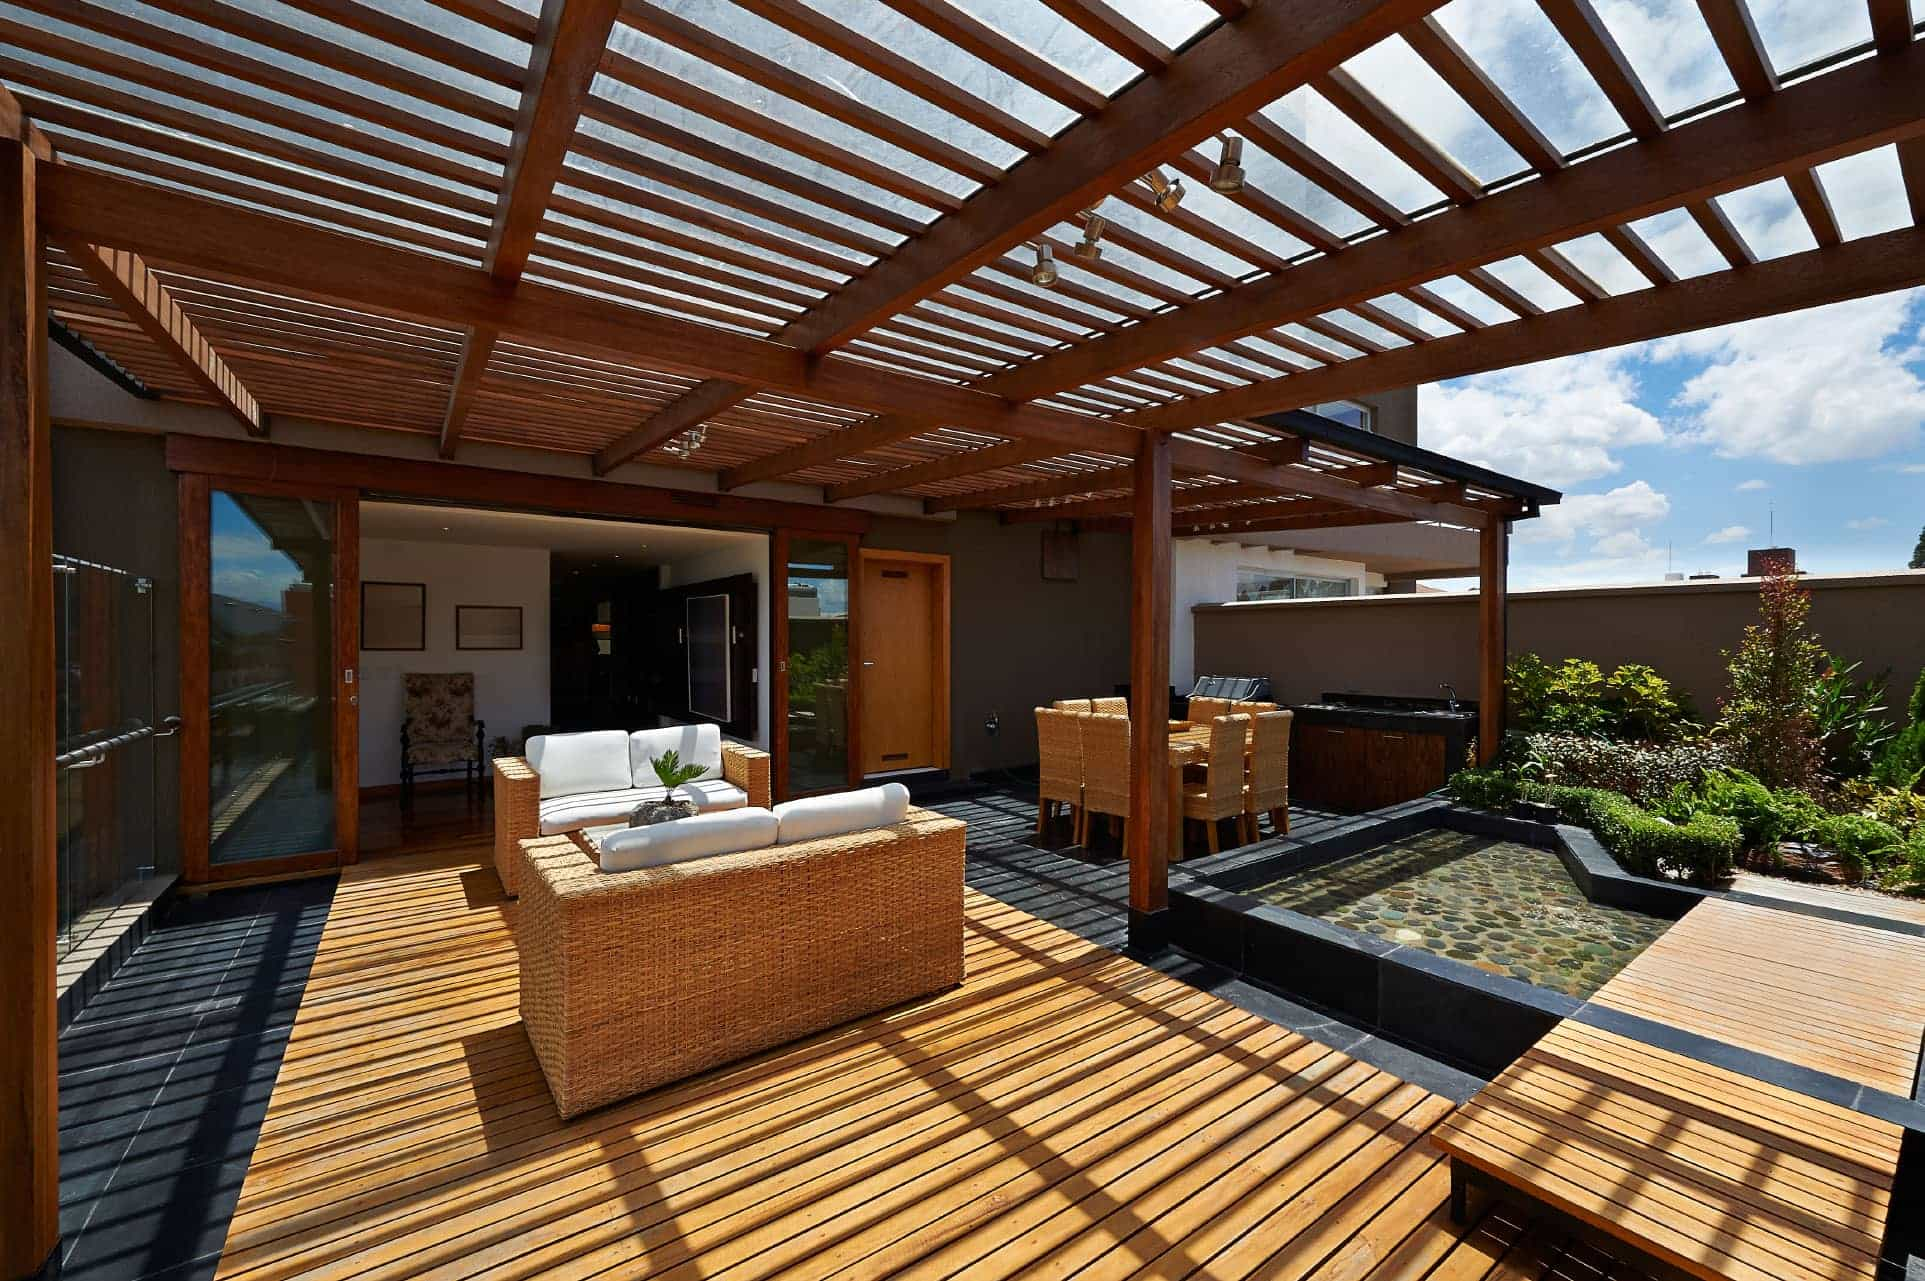 Don't Forget About Screening and Shading Your Outdoor Room - Spotlight on Sydney's Decking and Patios: 10 Tips for Your Outdoor Room